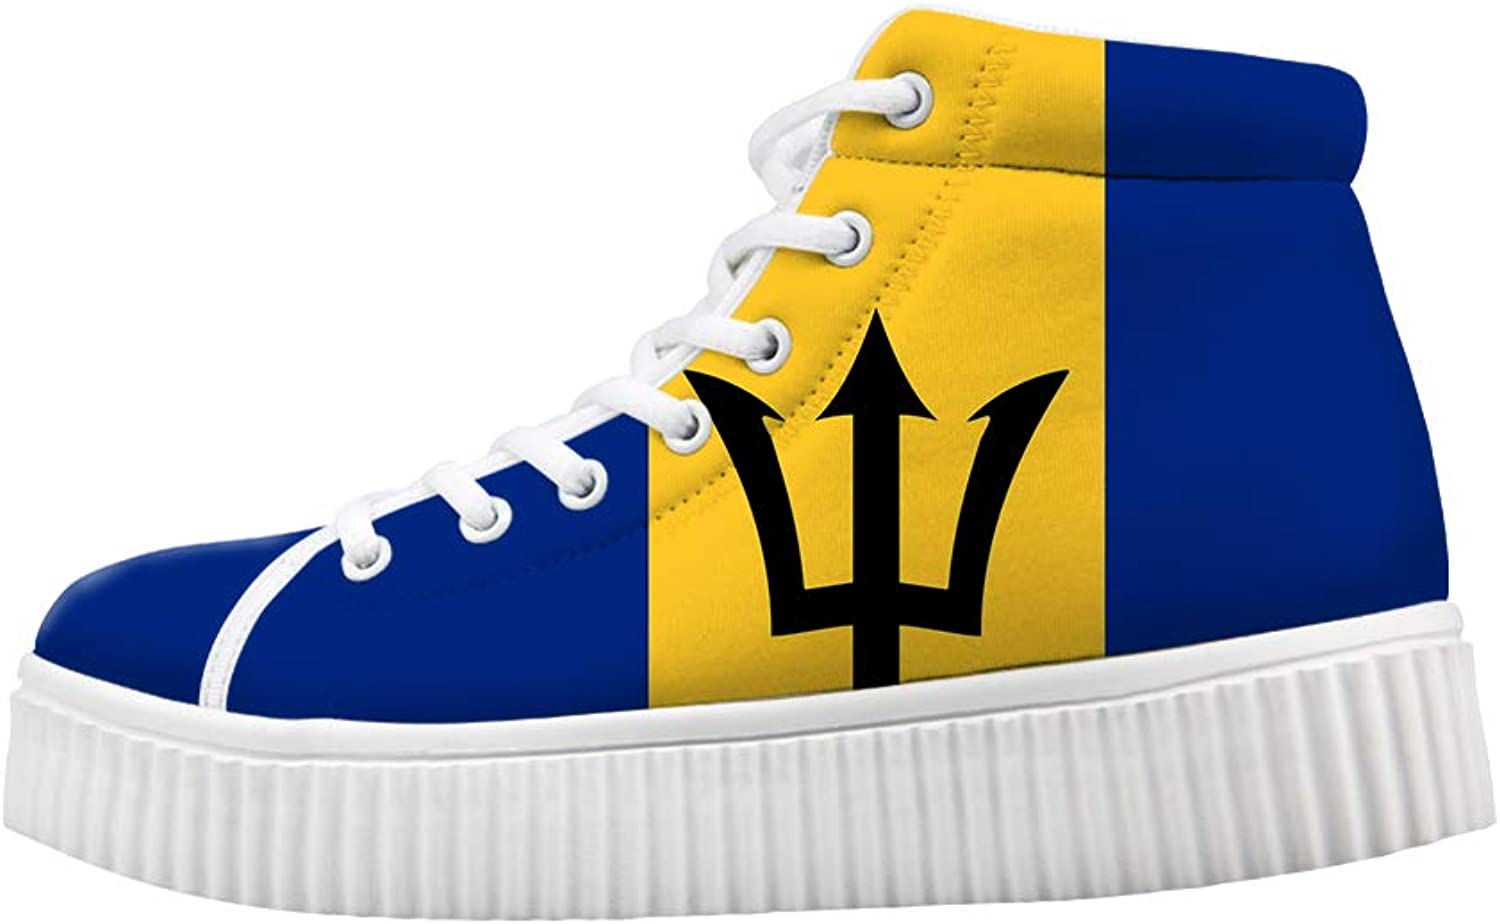 Owaheson Platform Lace up Sneaker Casual Chunky Walking shoes High Top Women Trident Barbados Flag